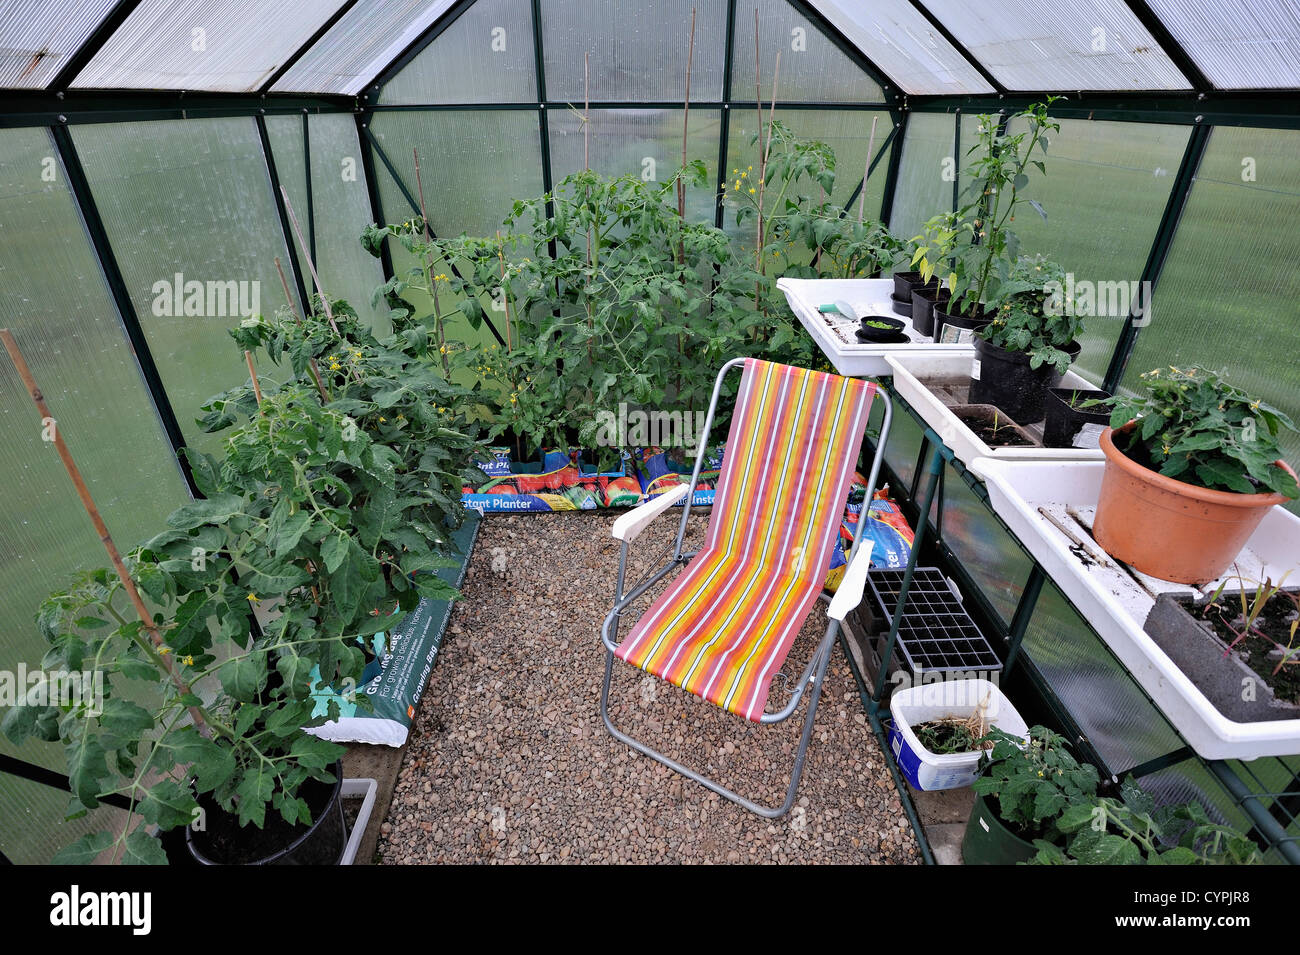 interior of small greenhouse with growing tomato plants seed